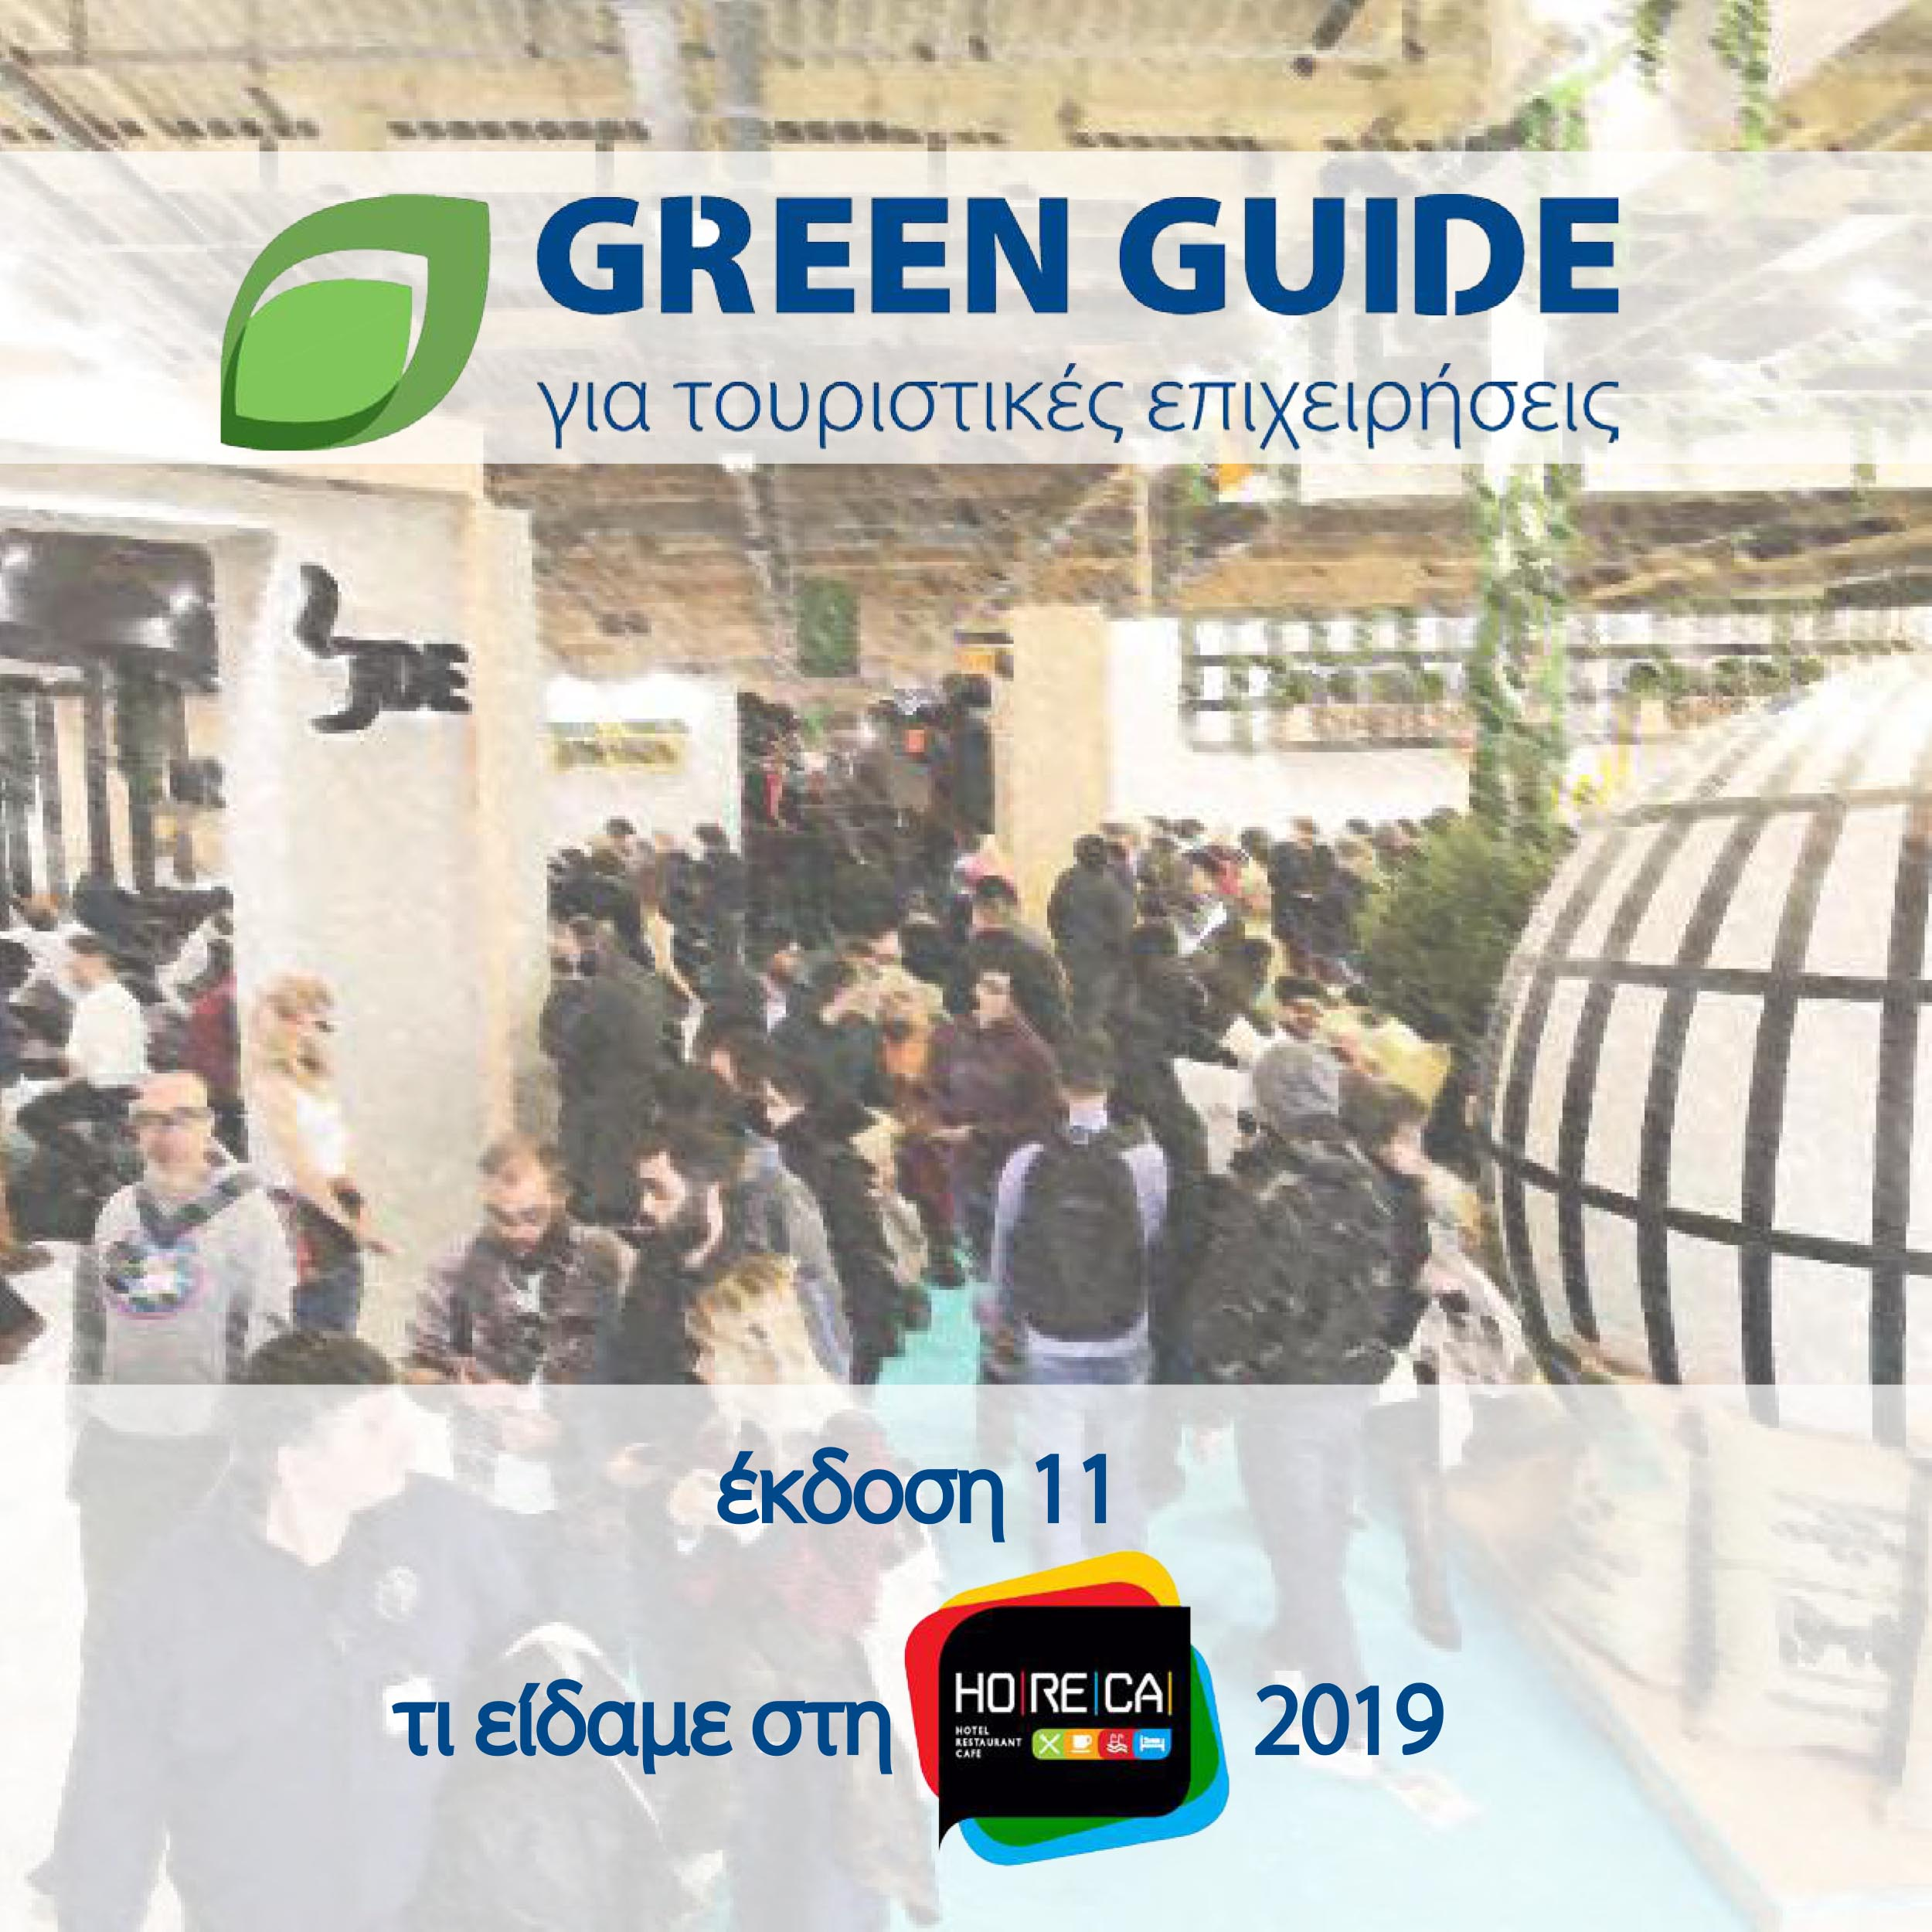 green guide 11 horeca-1